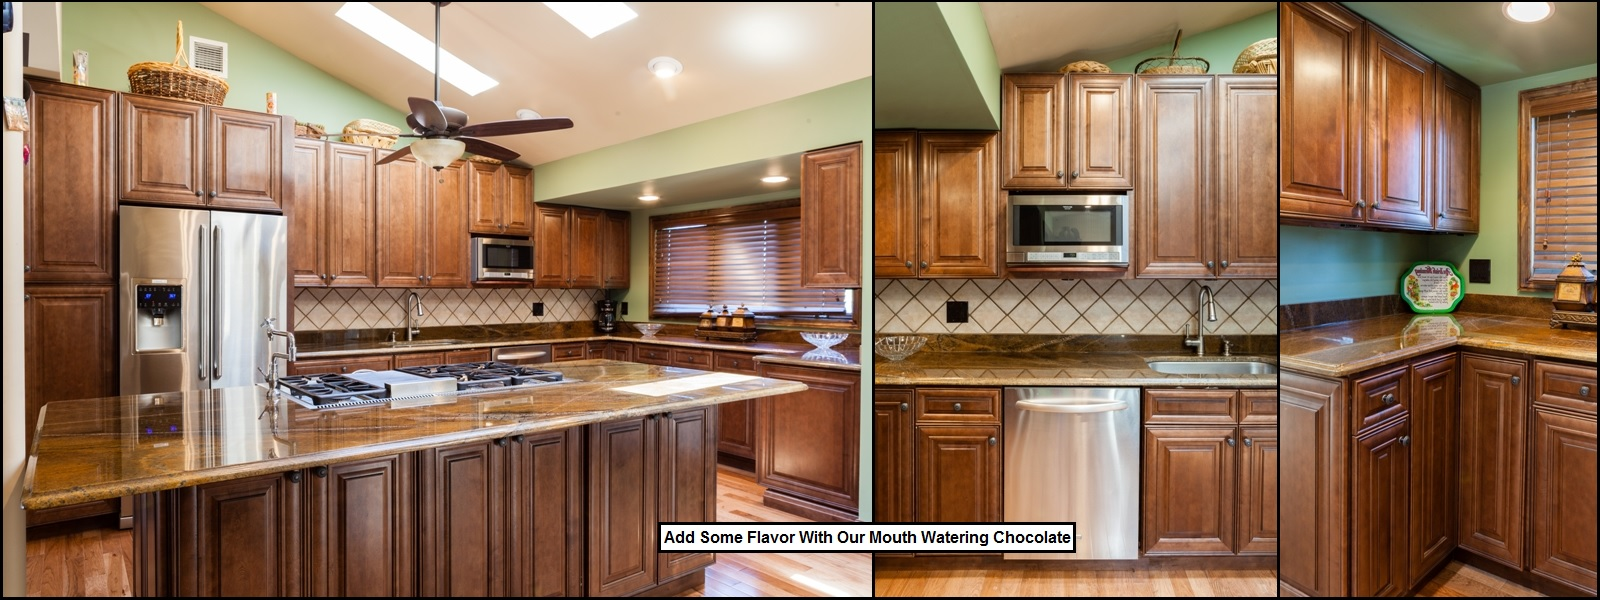 scottsdale kitchen cabinets kitchen cabinets and countertops Scottsdale High Quality Kitchen Cabinets Countertops